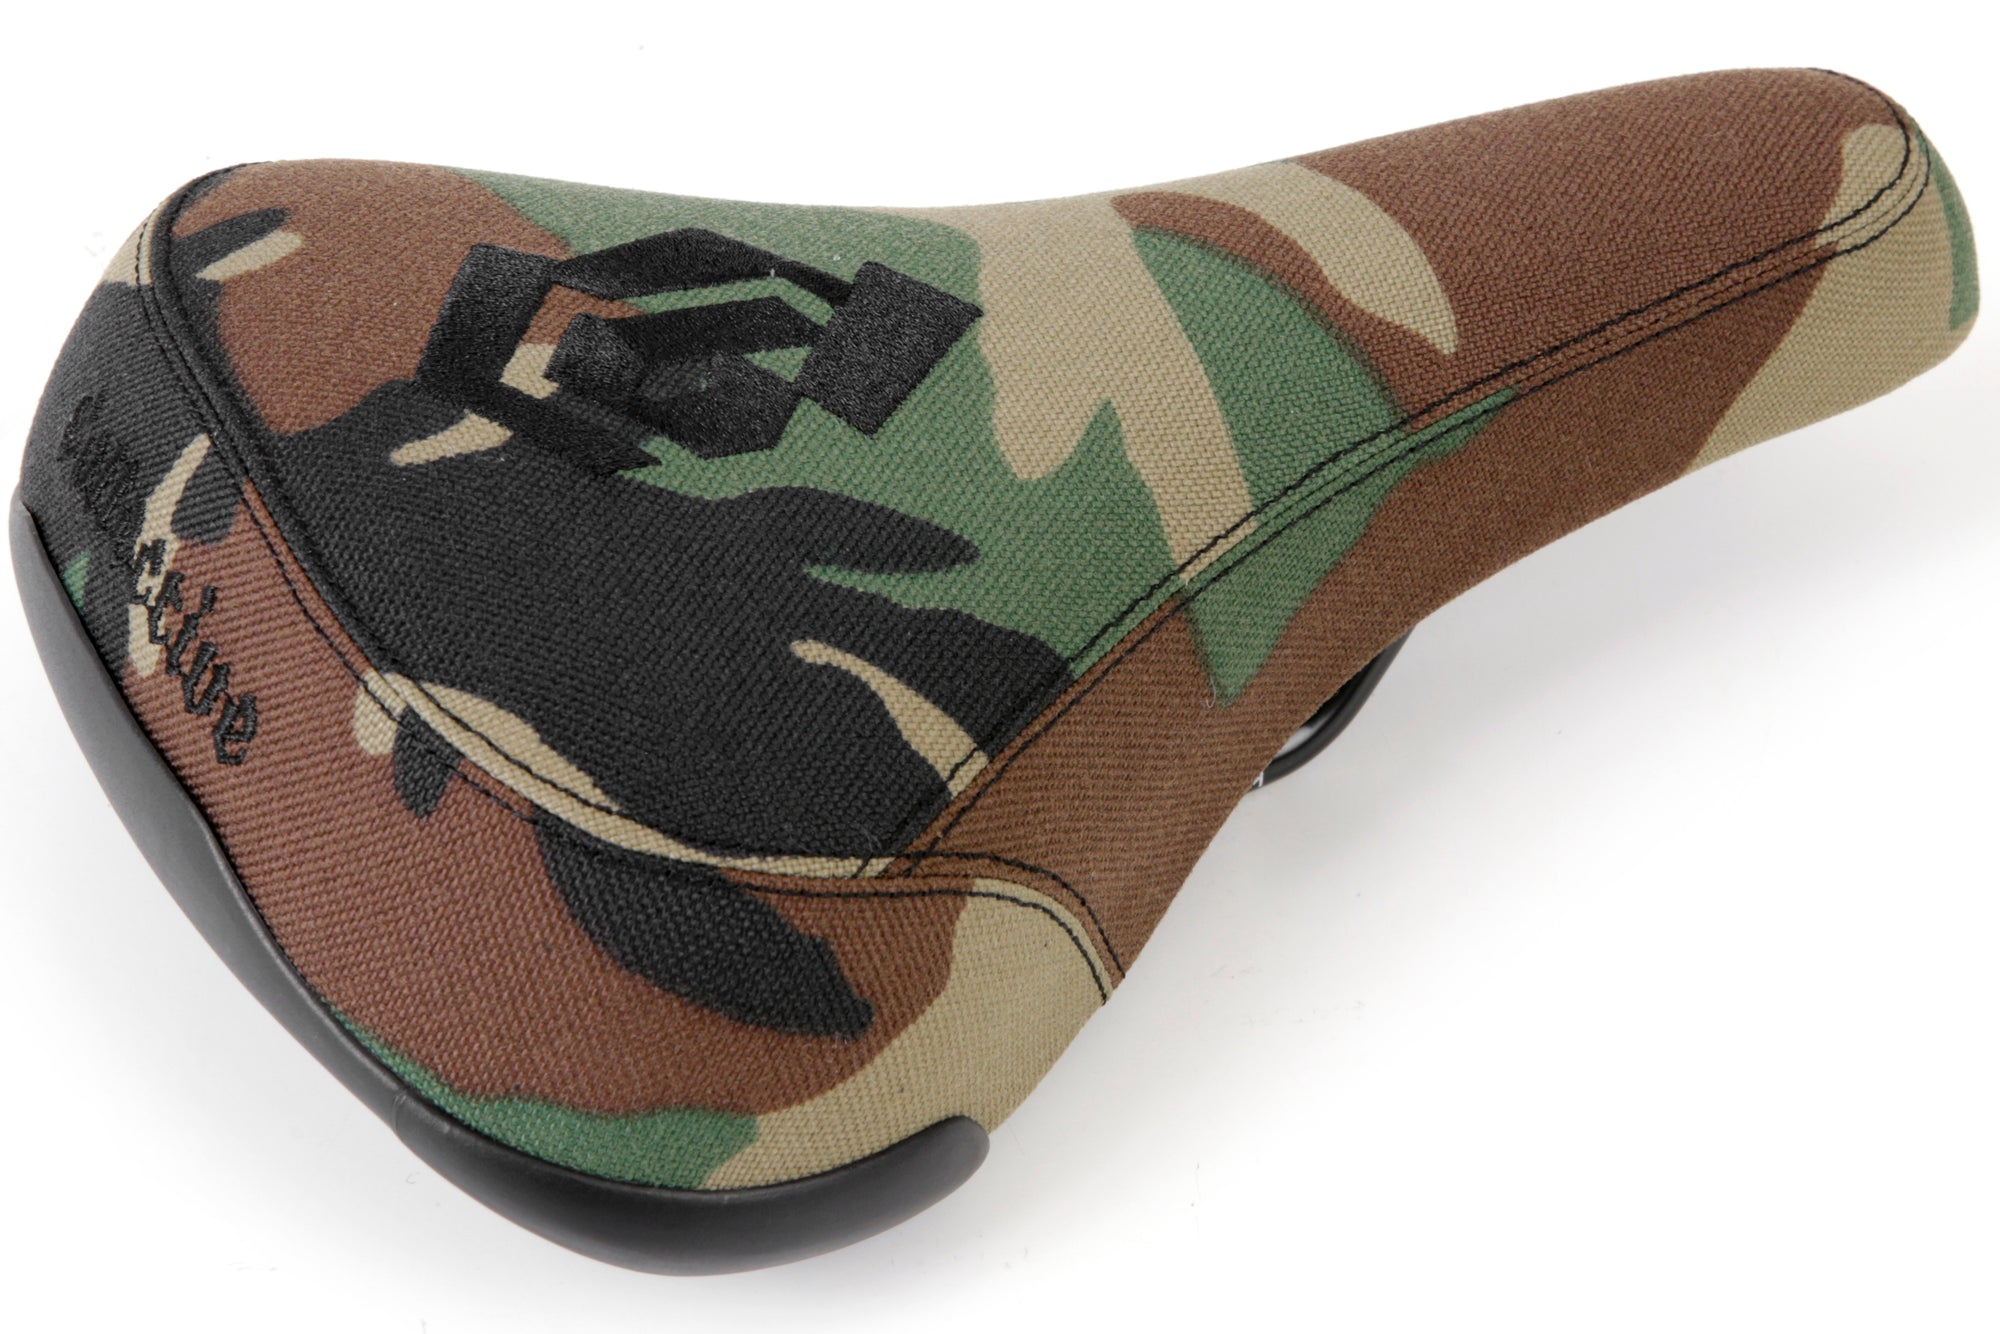 Collective Bikes MONOGRAM SEAT - CAMO